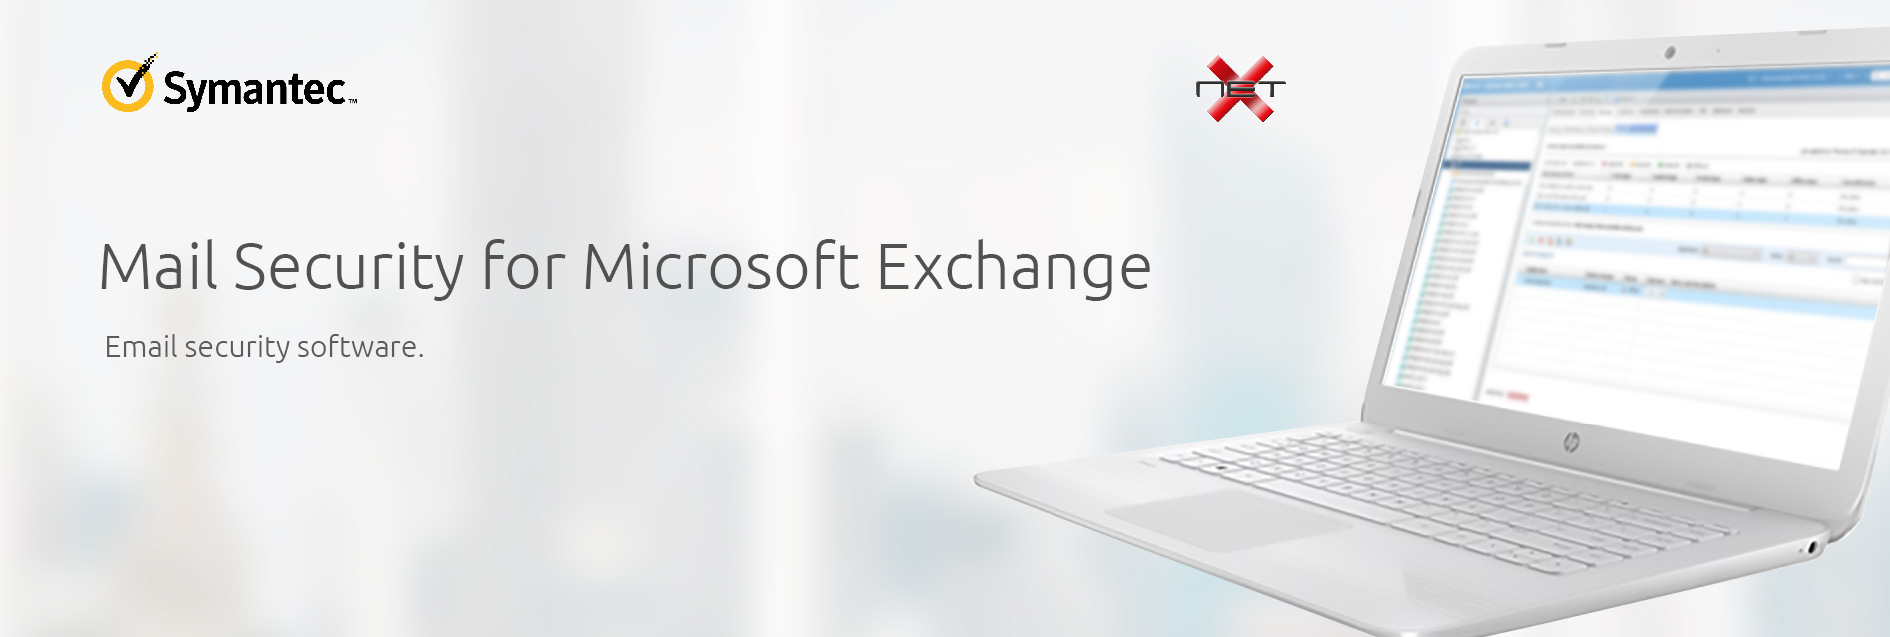 netx-symantec-Mail-Security-for-Microsoft-Exchange-banner